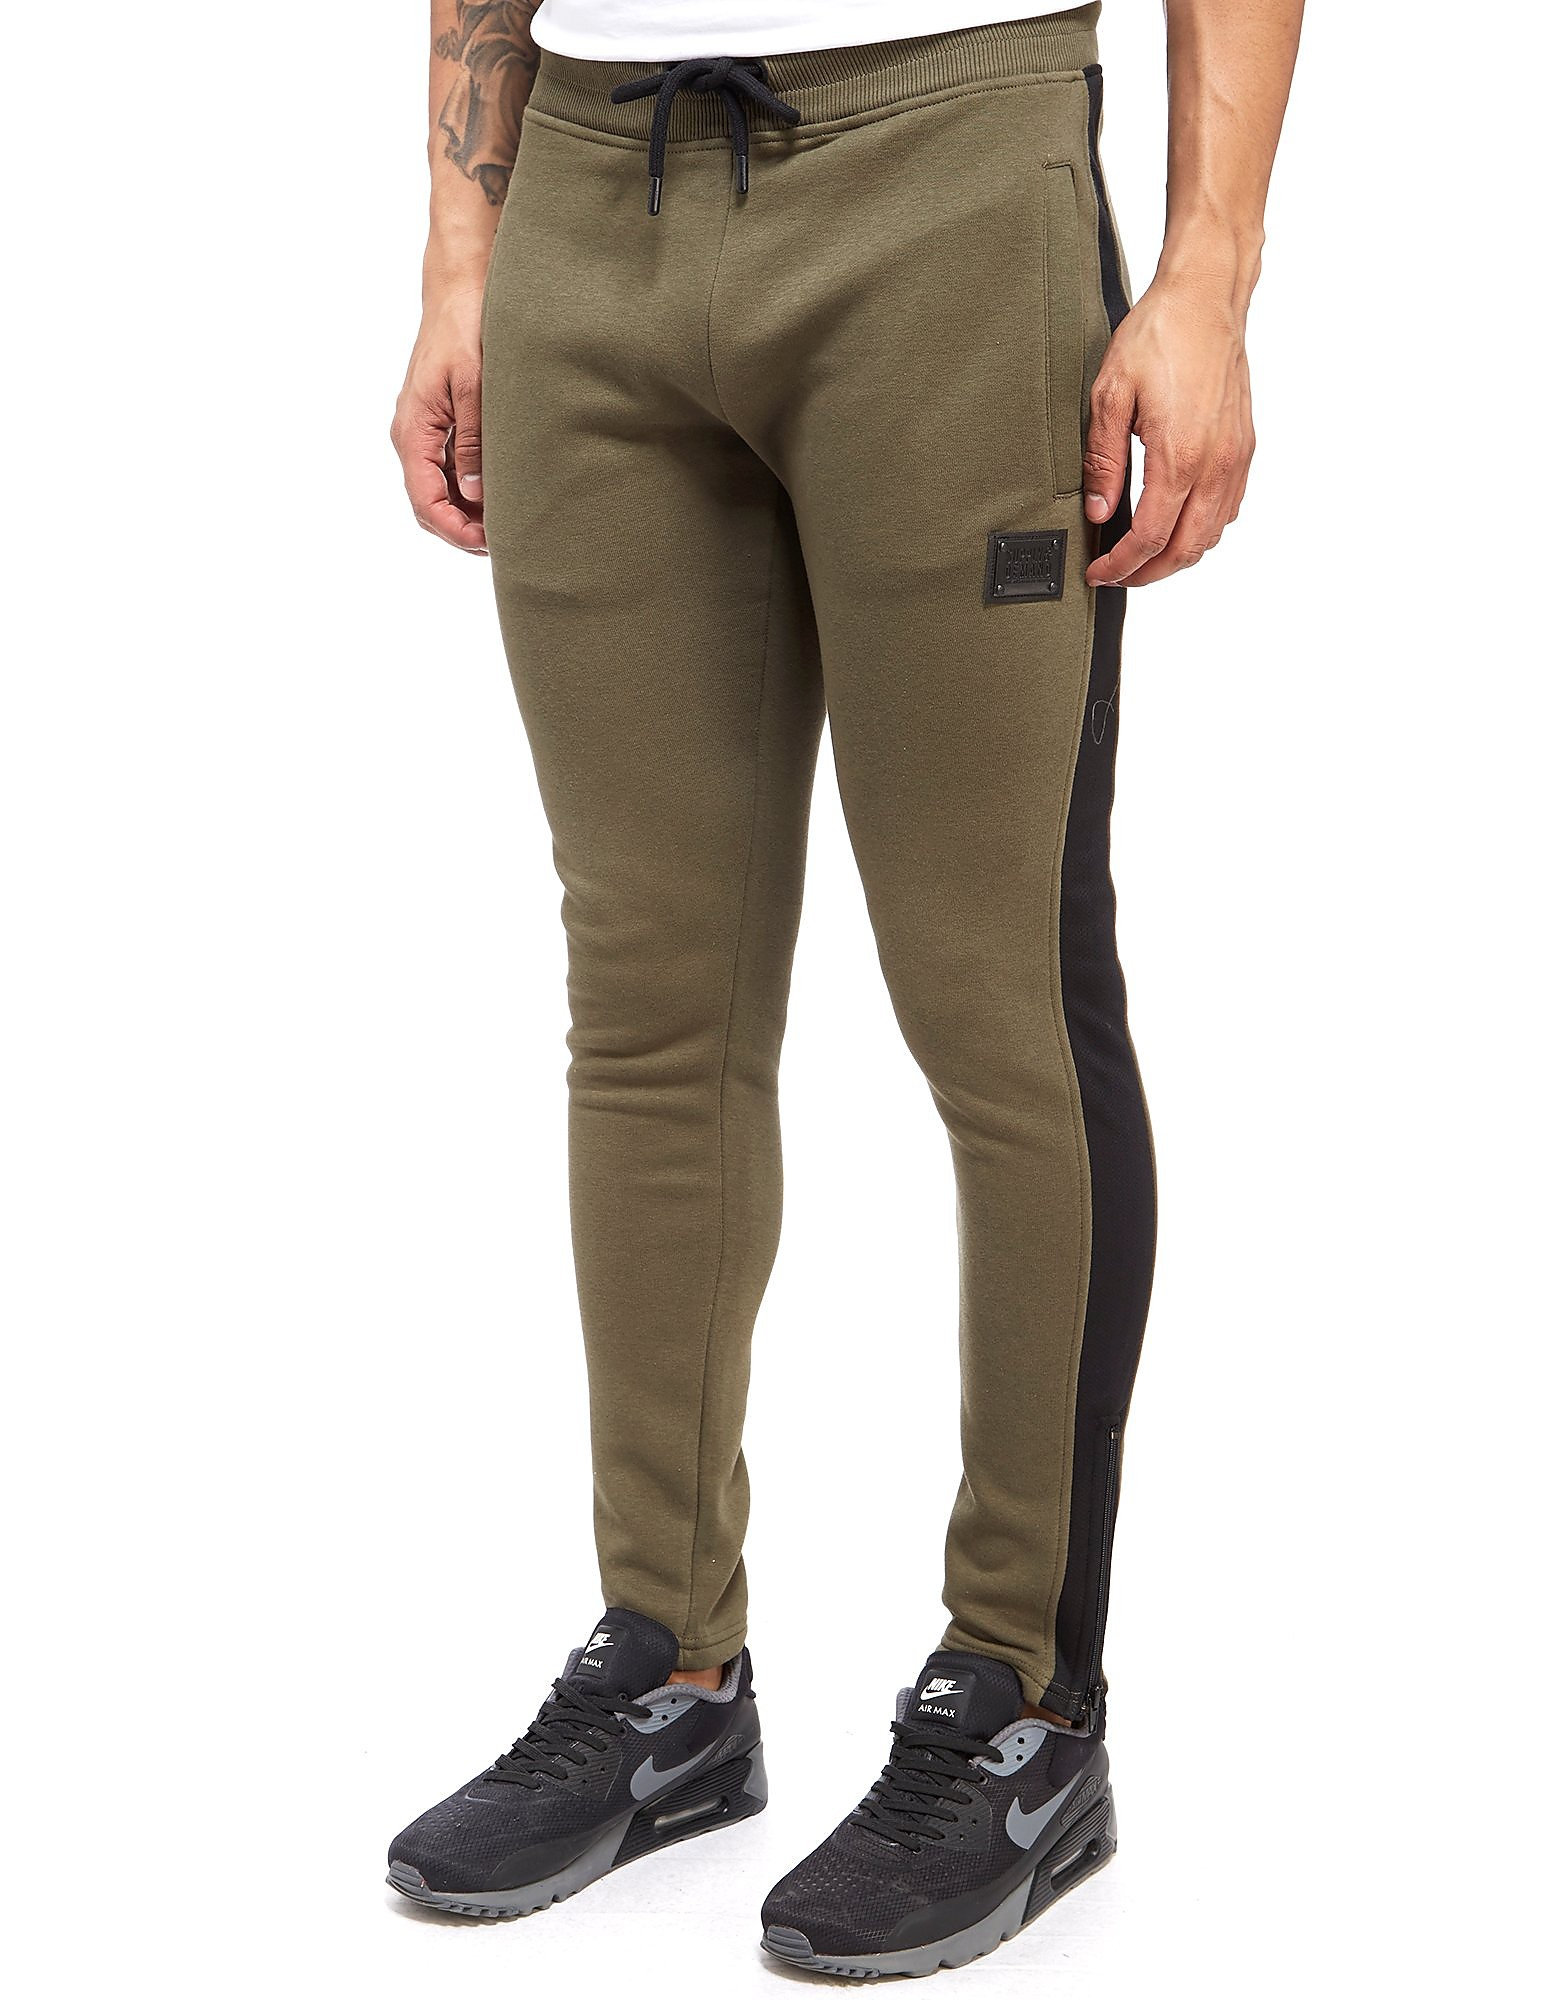 Supply & Demand Electric Joggers